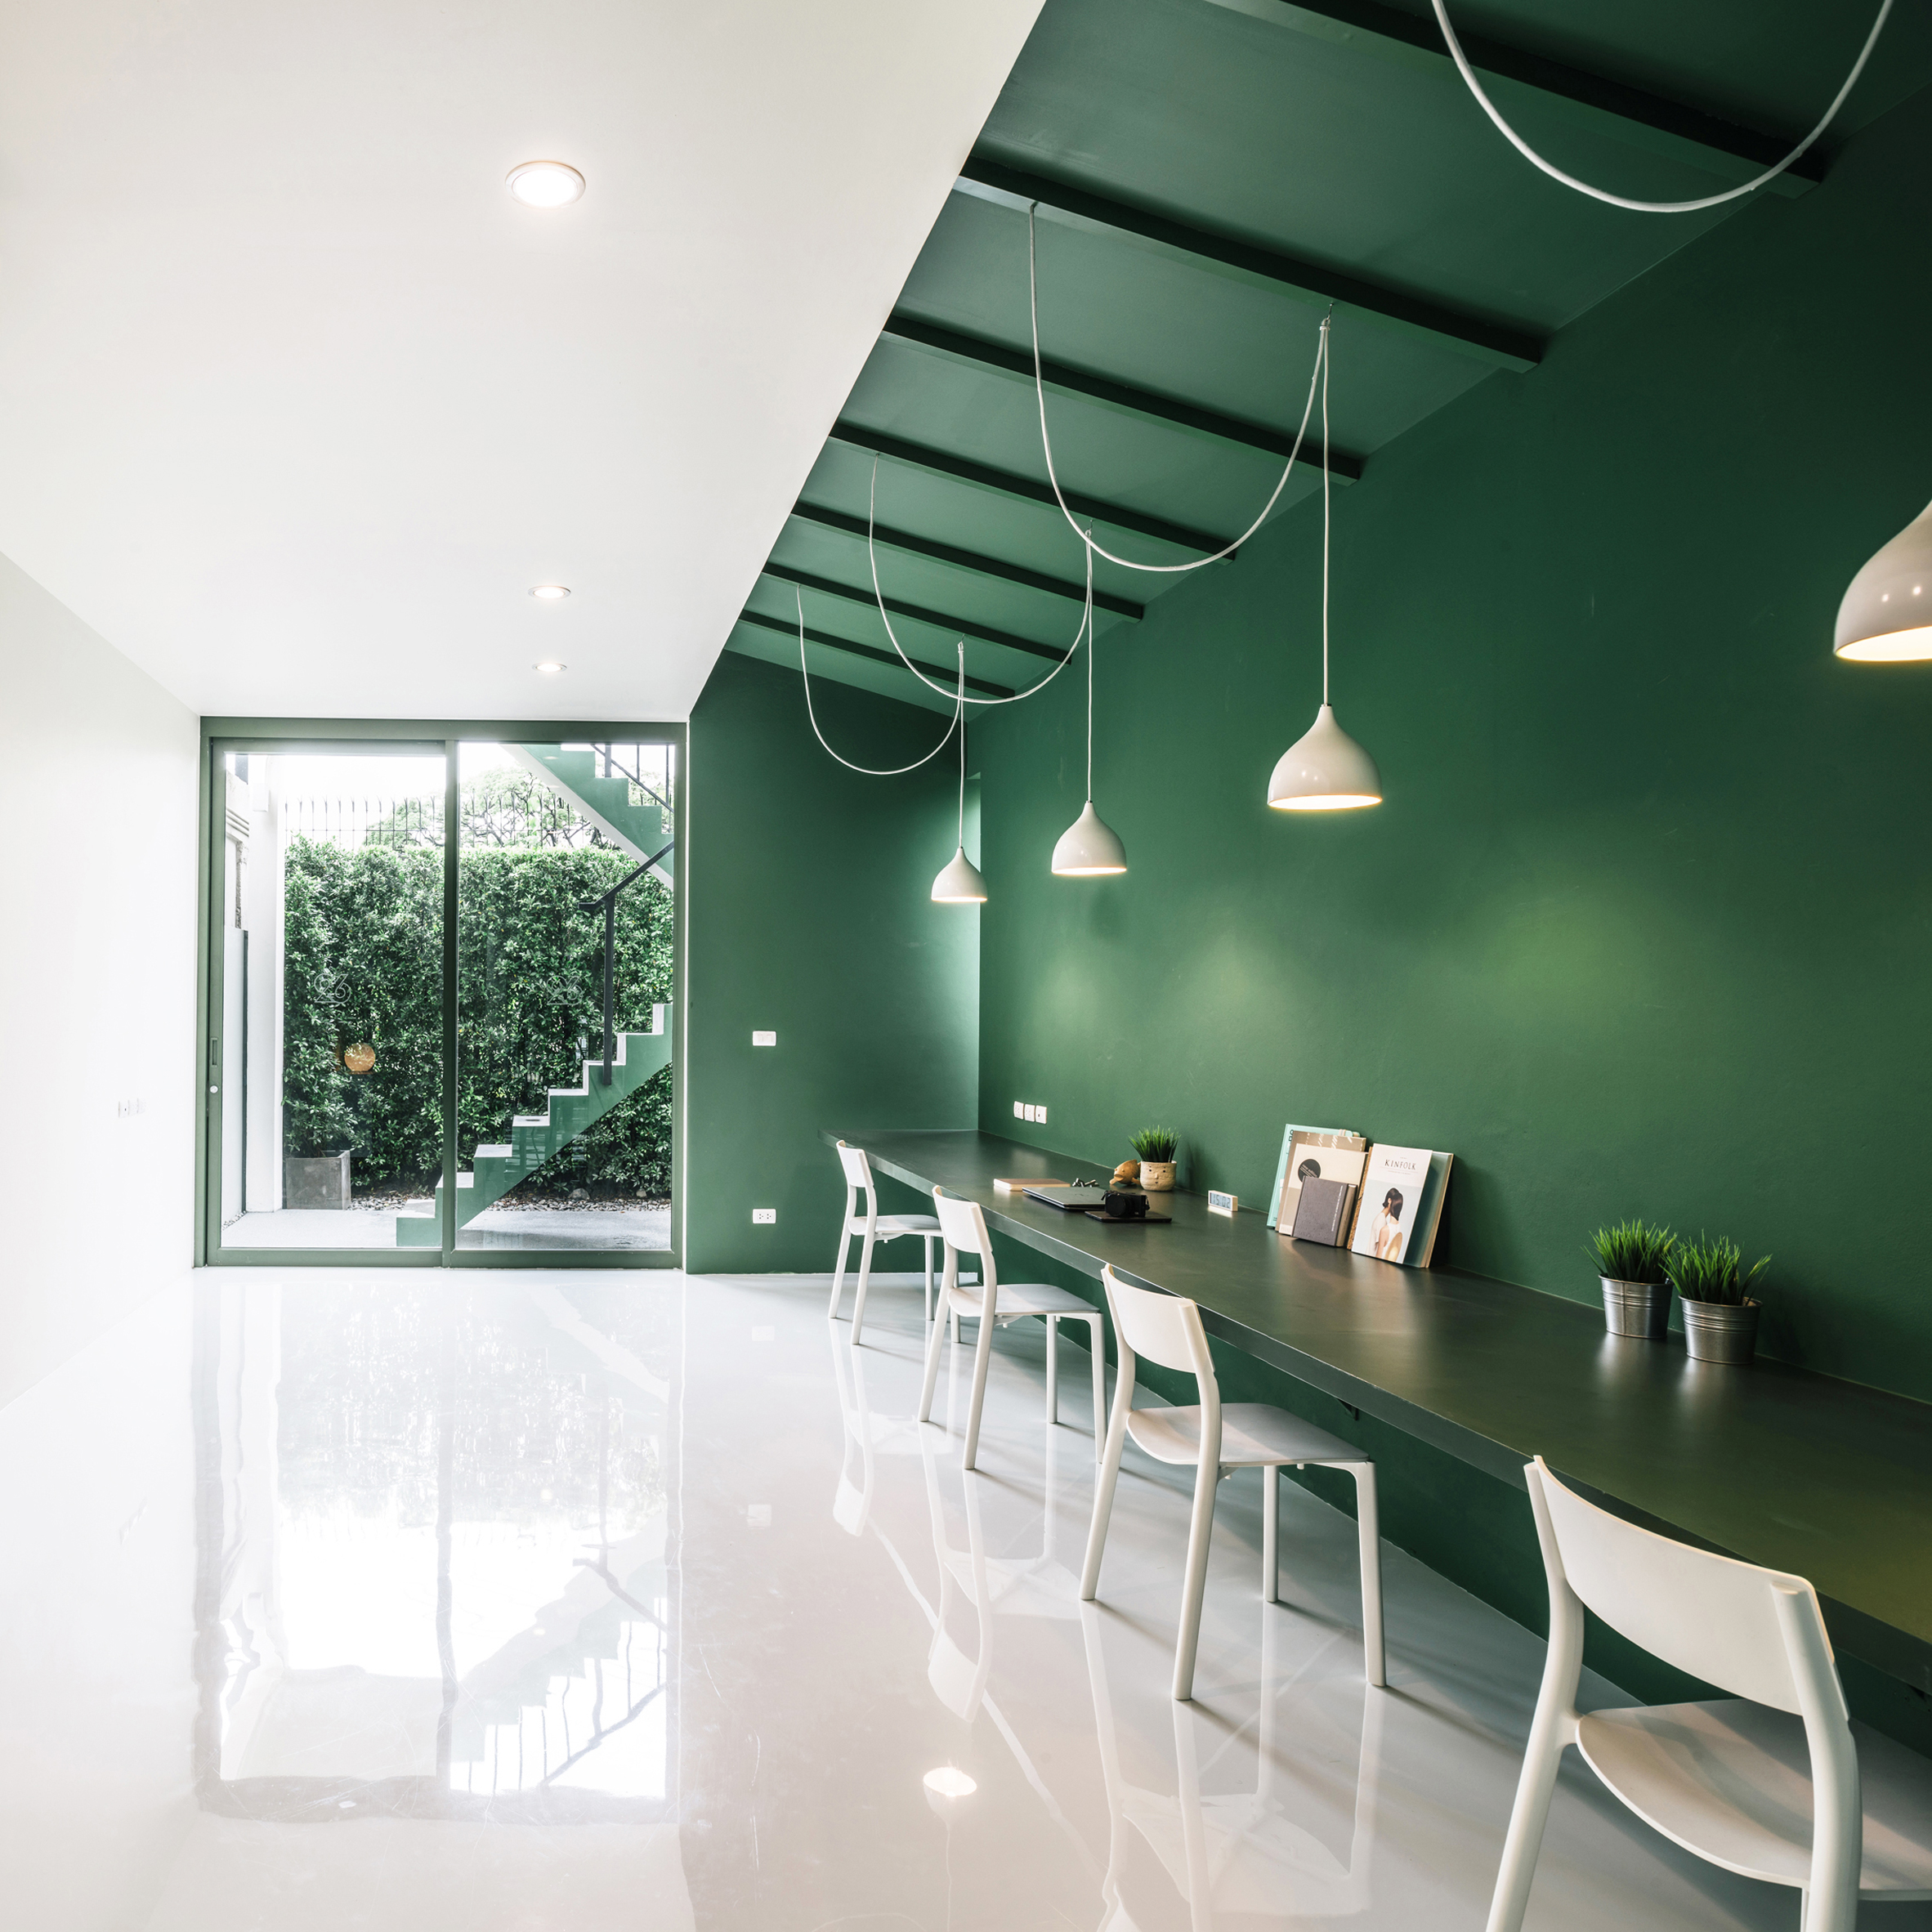 Interior Design Office Interior Design Office Dezeen Linkedlifescom